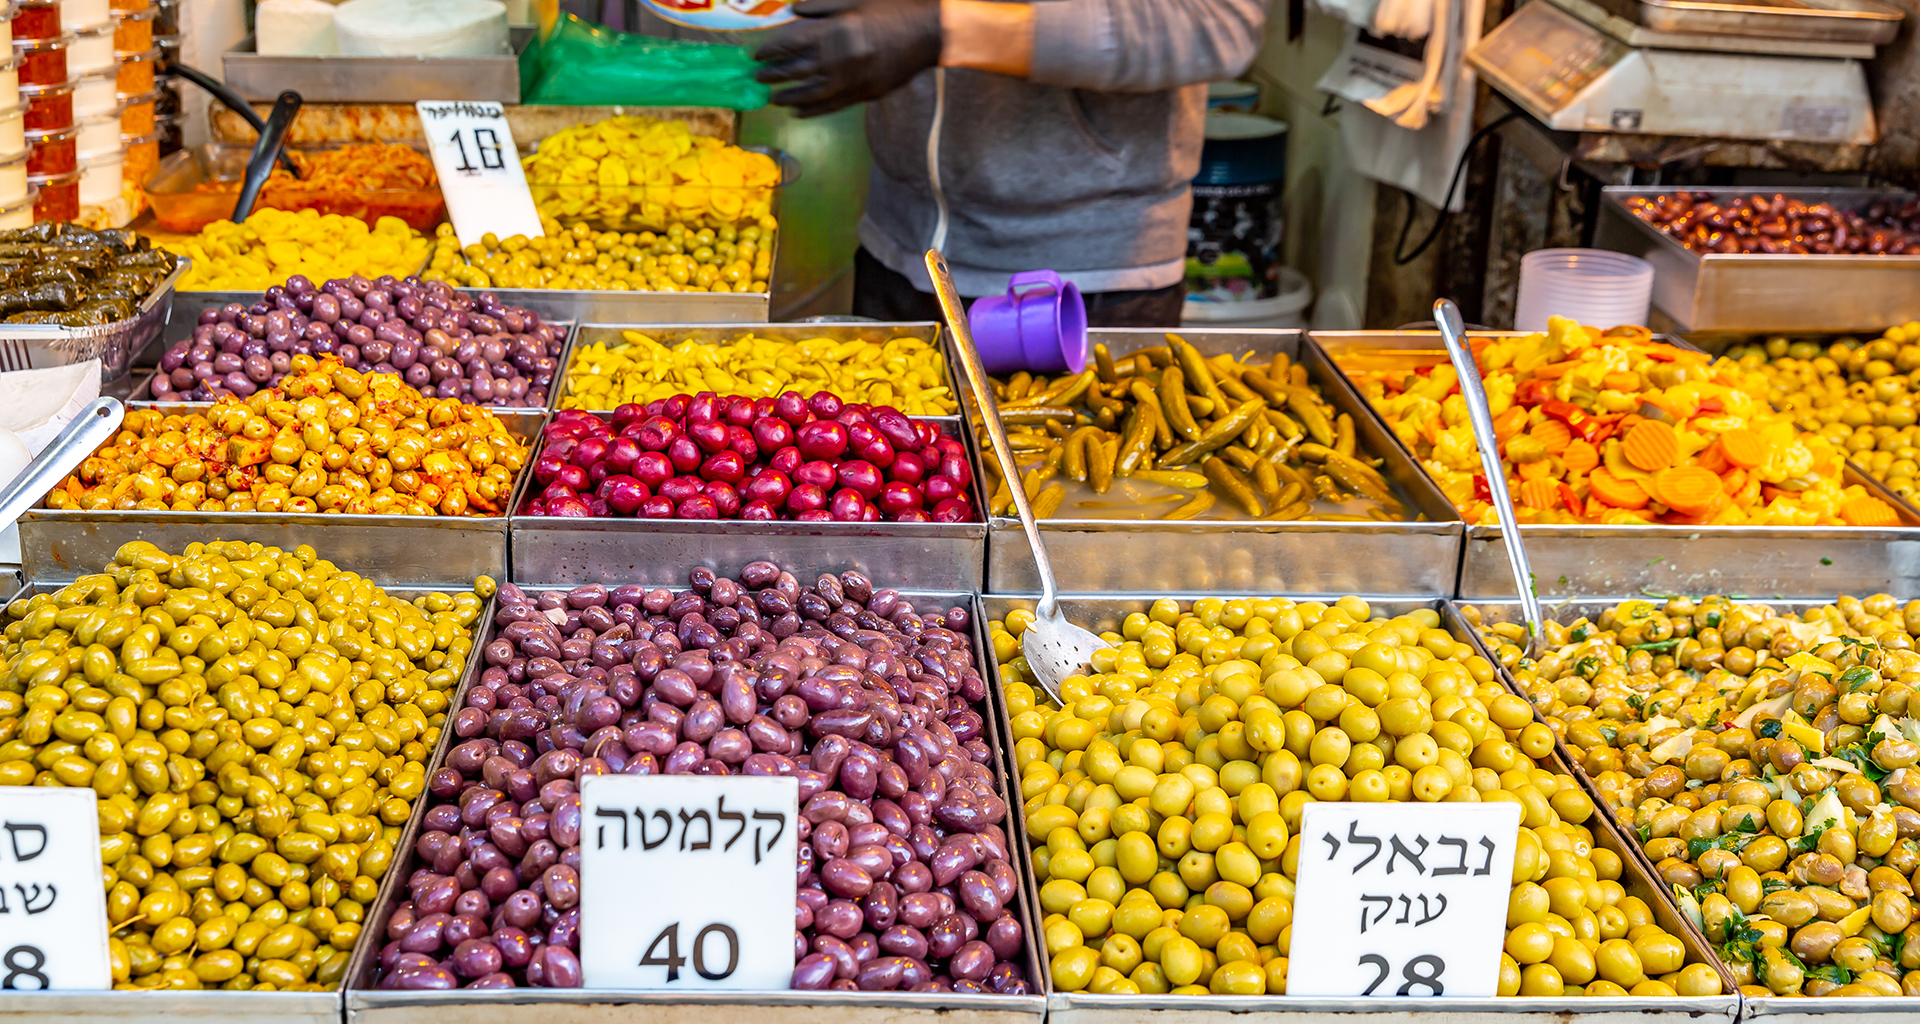 olives in a market in Israel